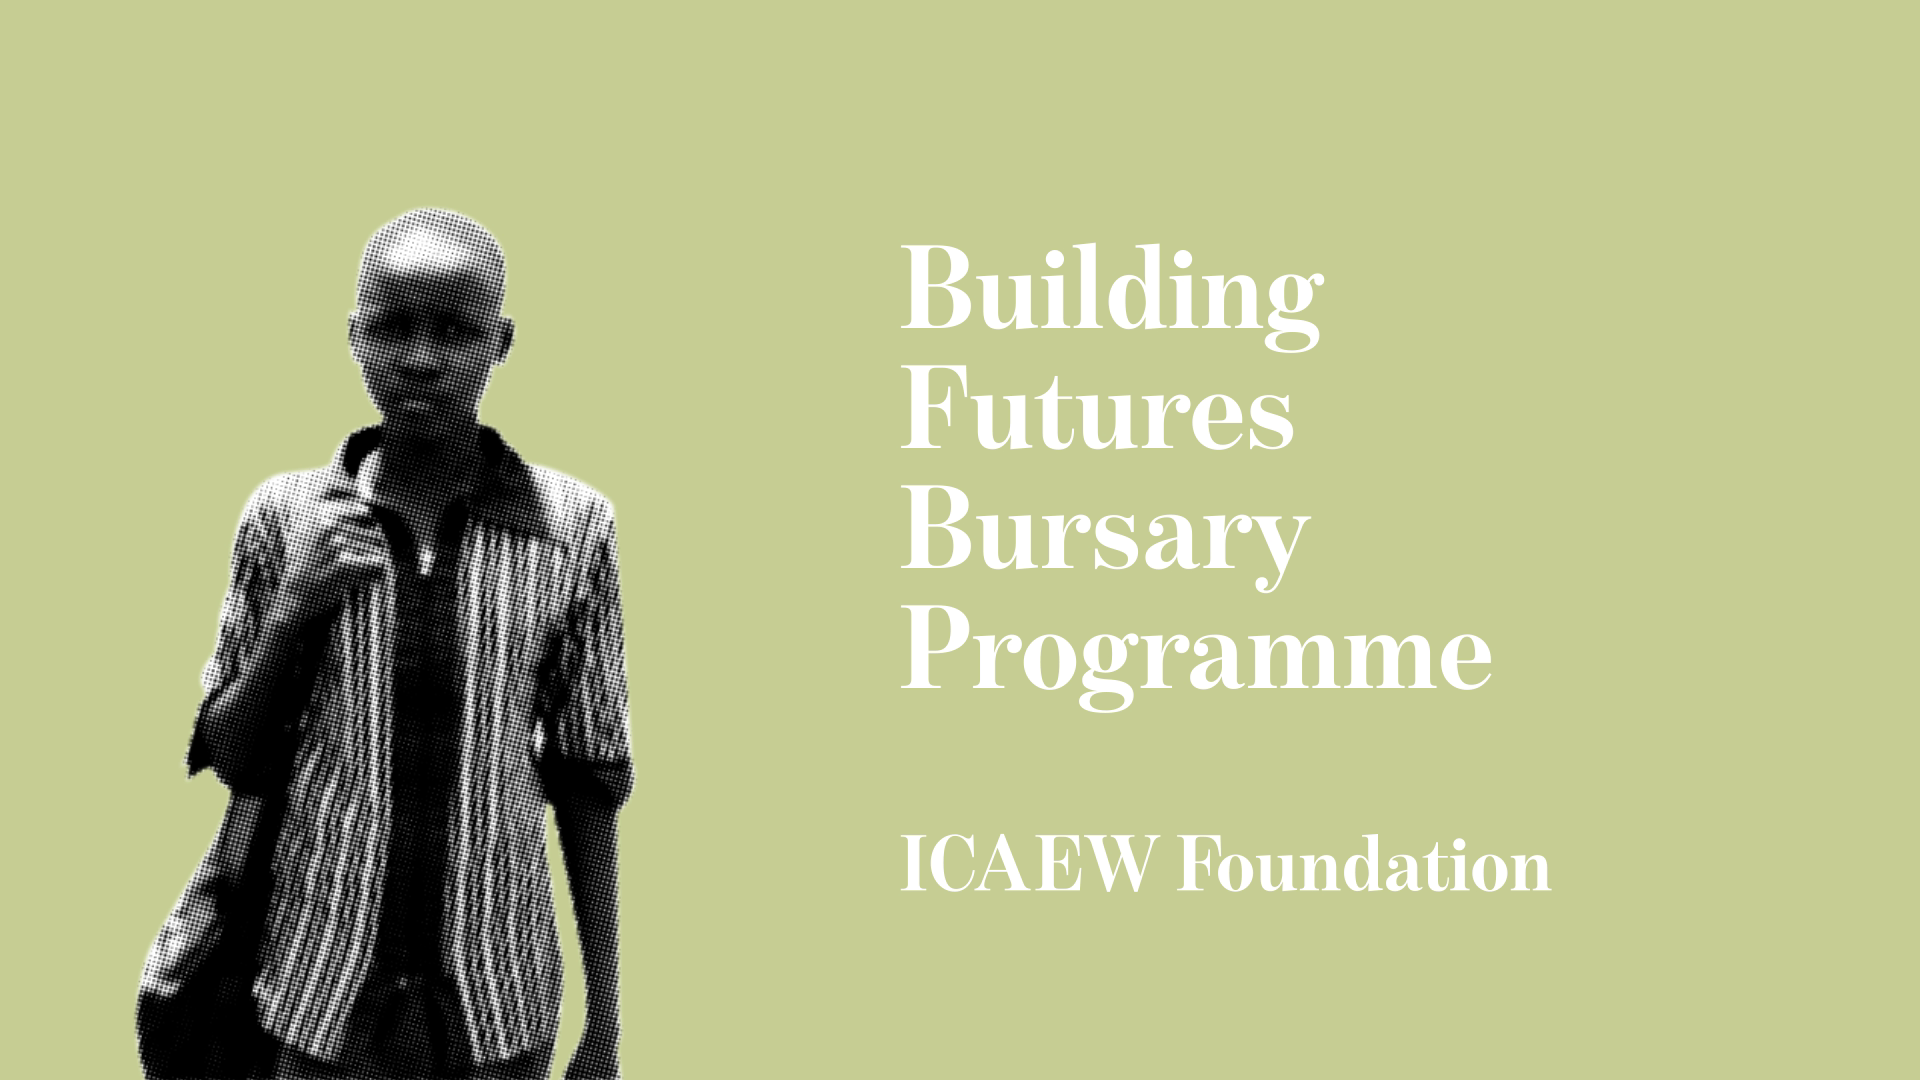 ICAEW fundraising Film graphic with student ICAEW Foundation Building Futures Bursary Programme